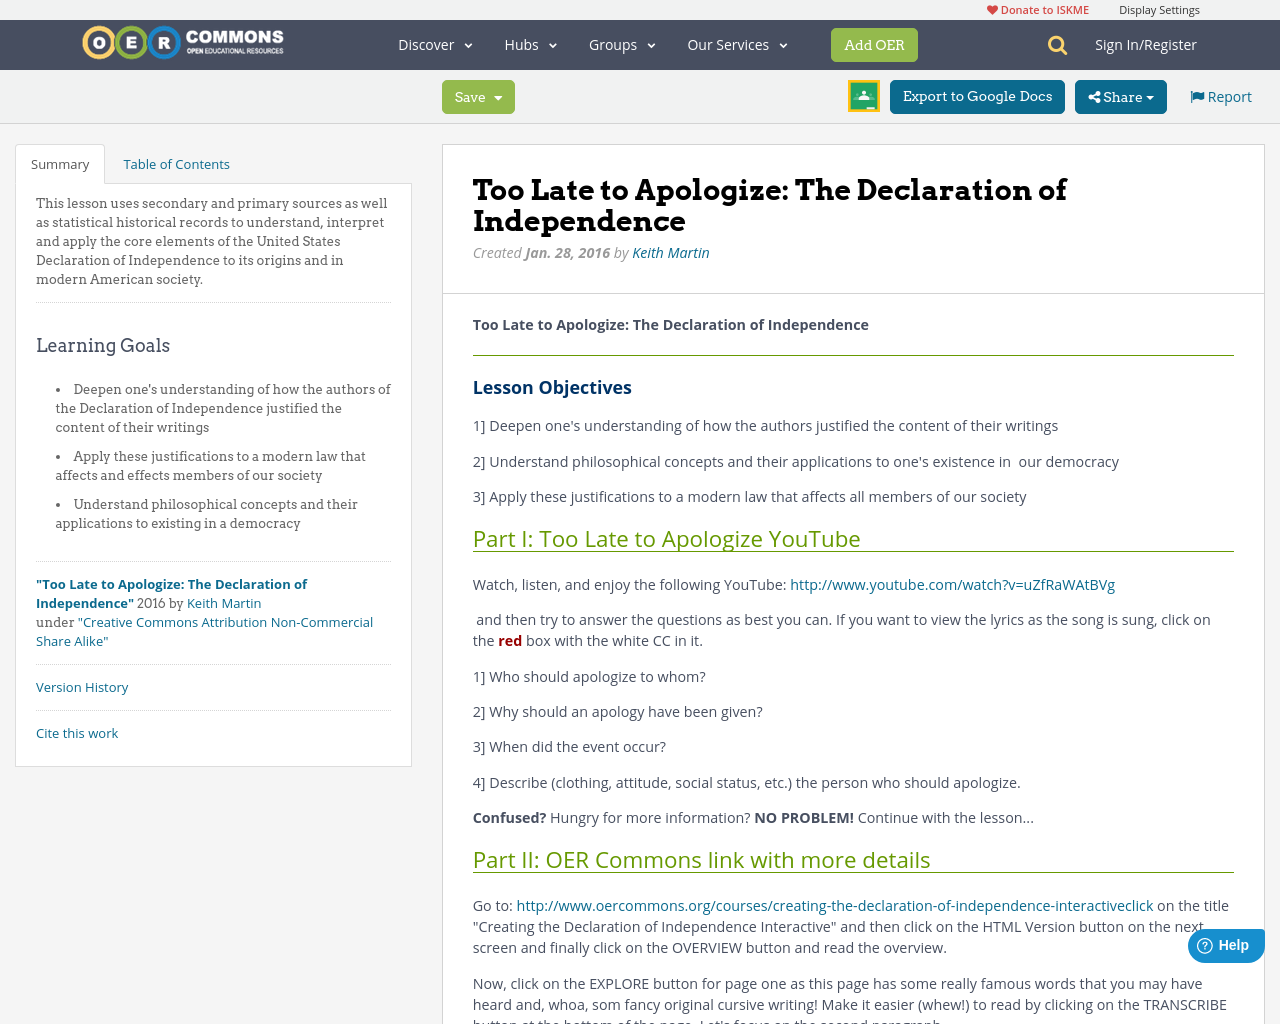 too late to apologize the declaration of independence oer commons